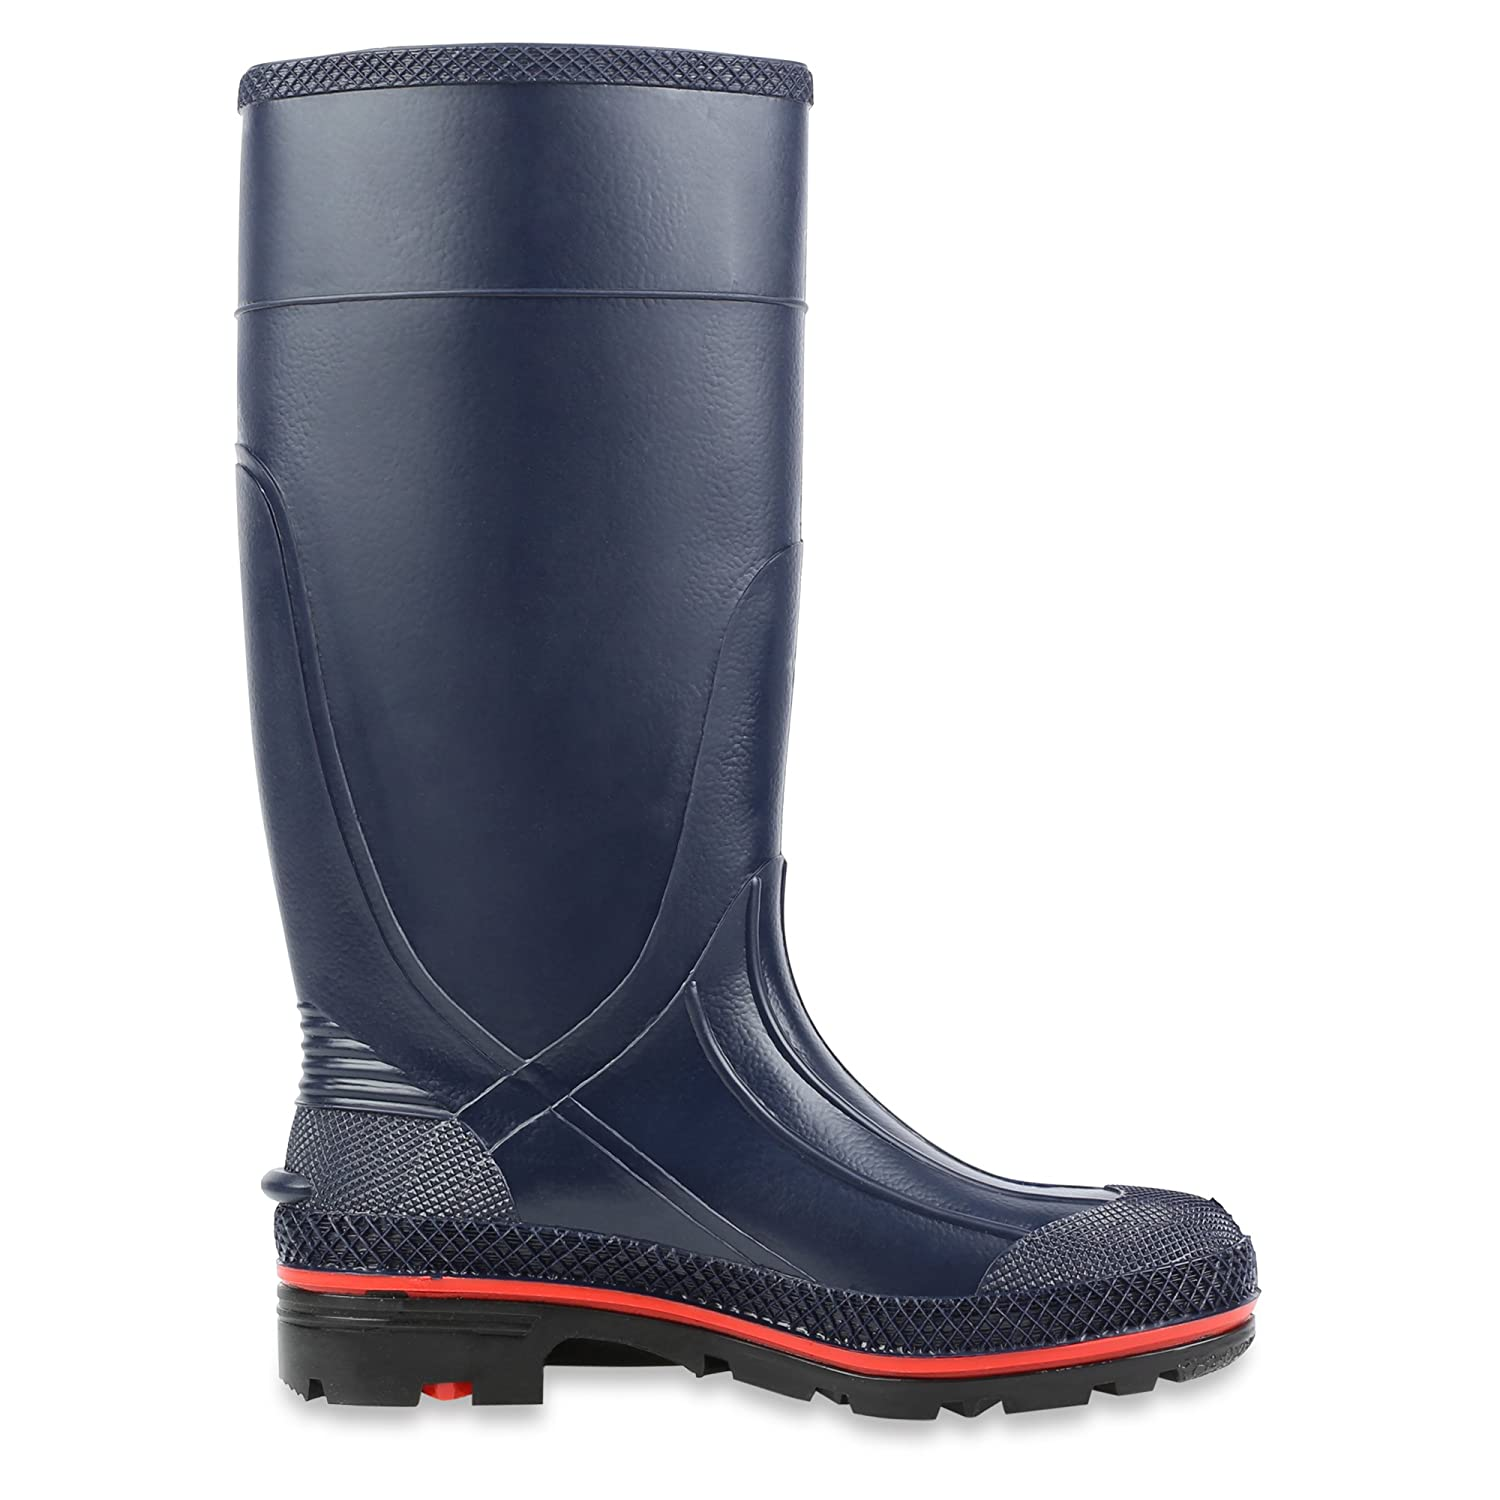 Navy Red /& Black 75126 Servus MAX 15 PVC Chemical-Resistant Soft Toe Womens Work Boots Sperian Protection Group 75126-NVM-100